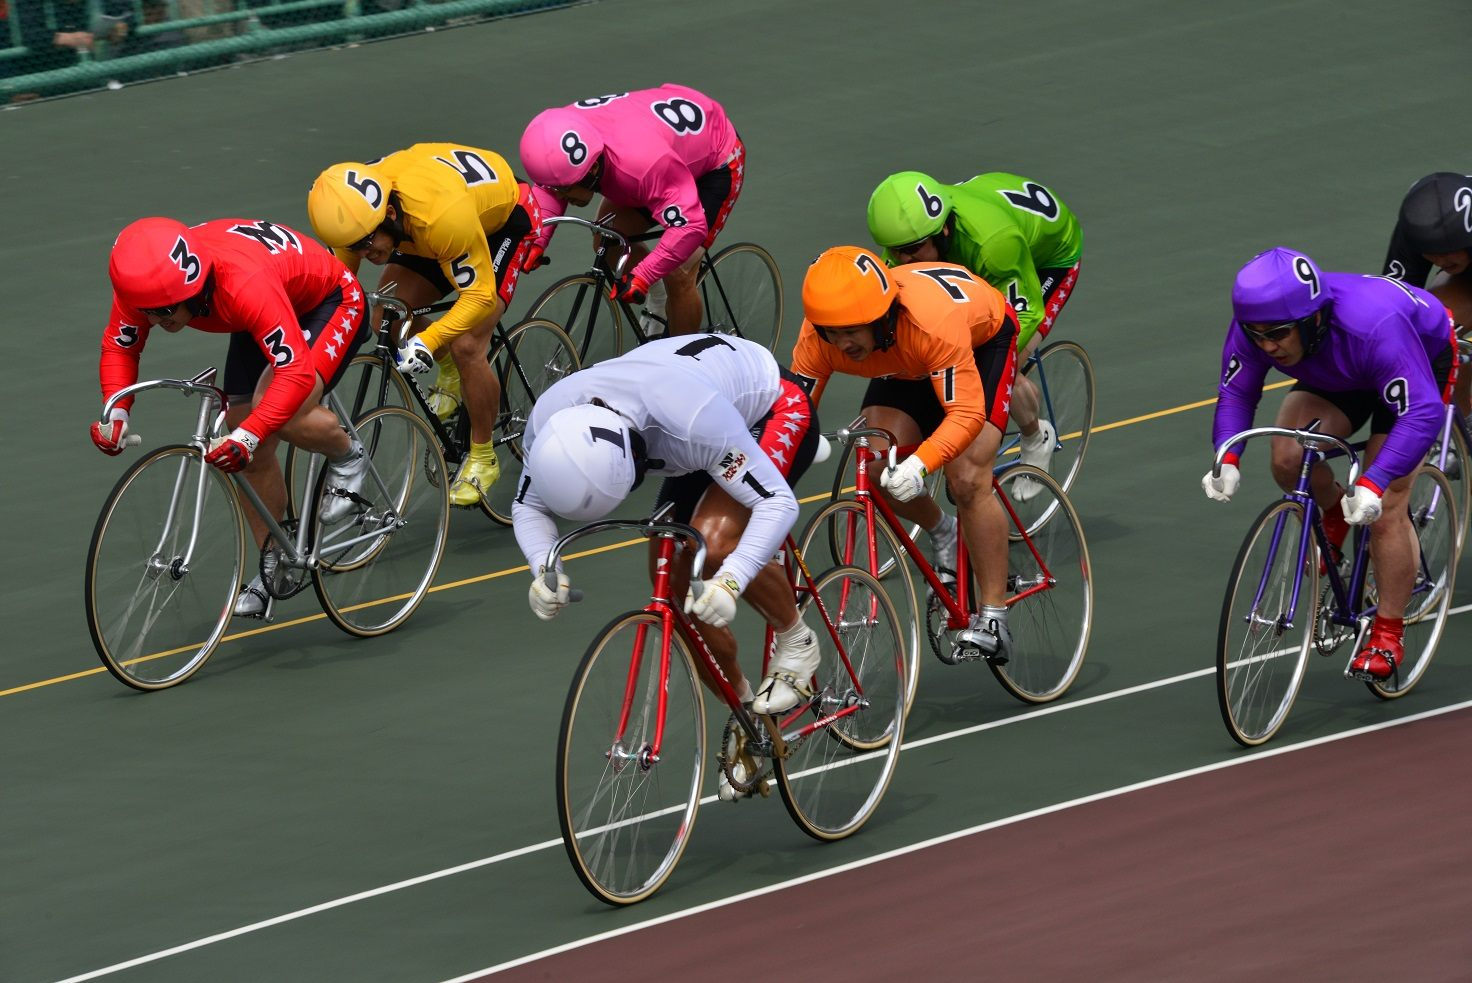 It's thrilling to watch bicycle races where speeds top 70 km per hour!